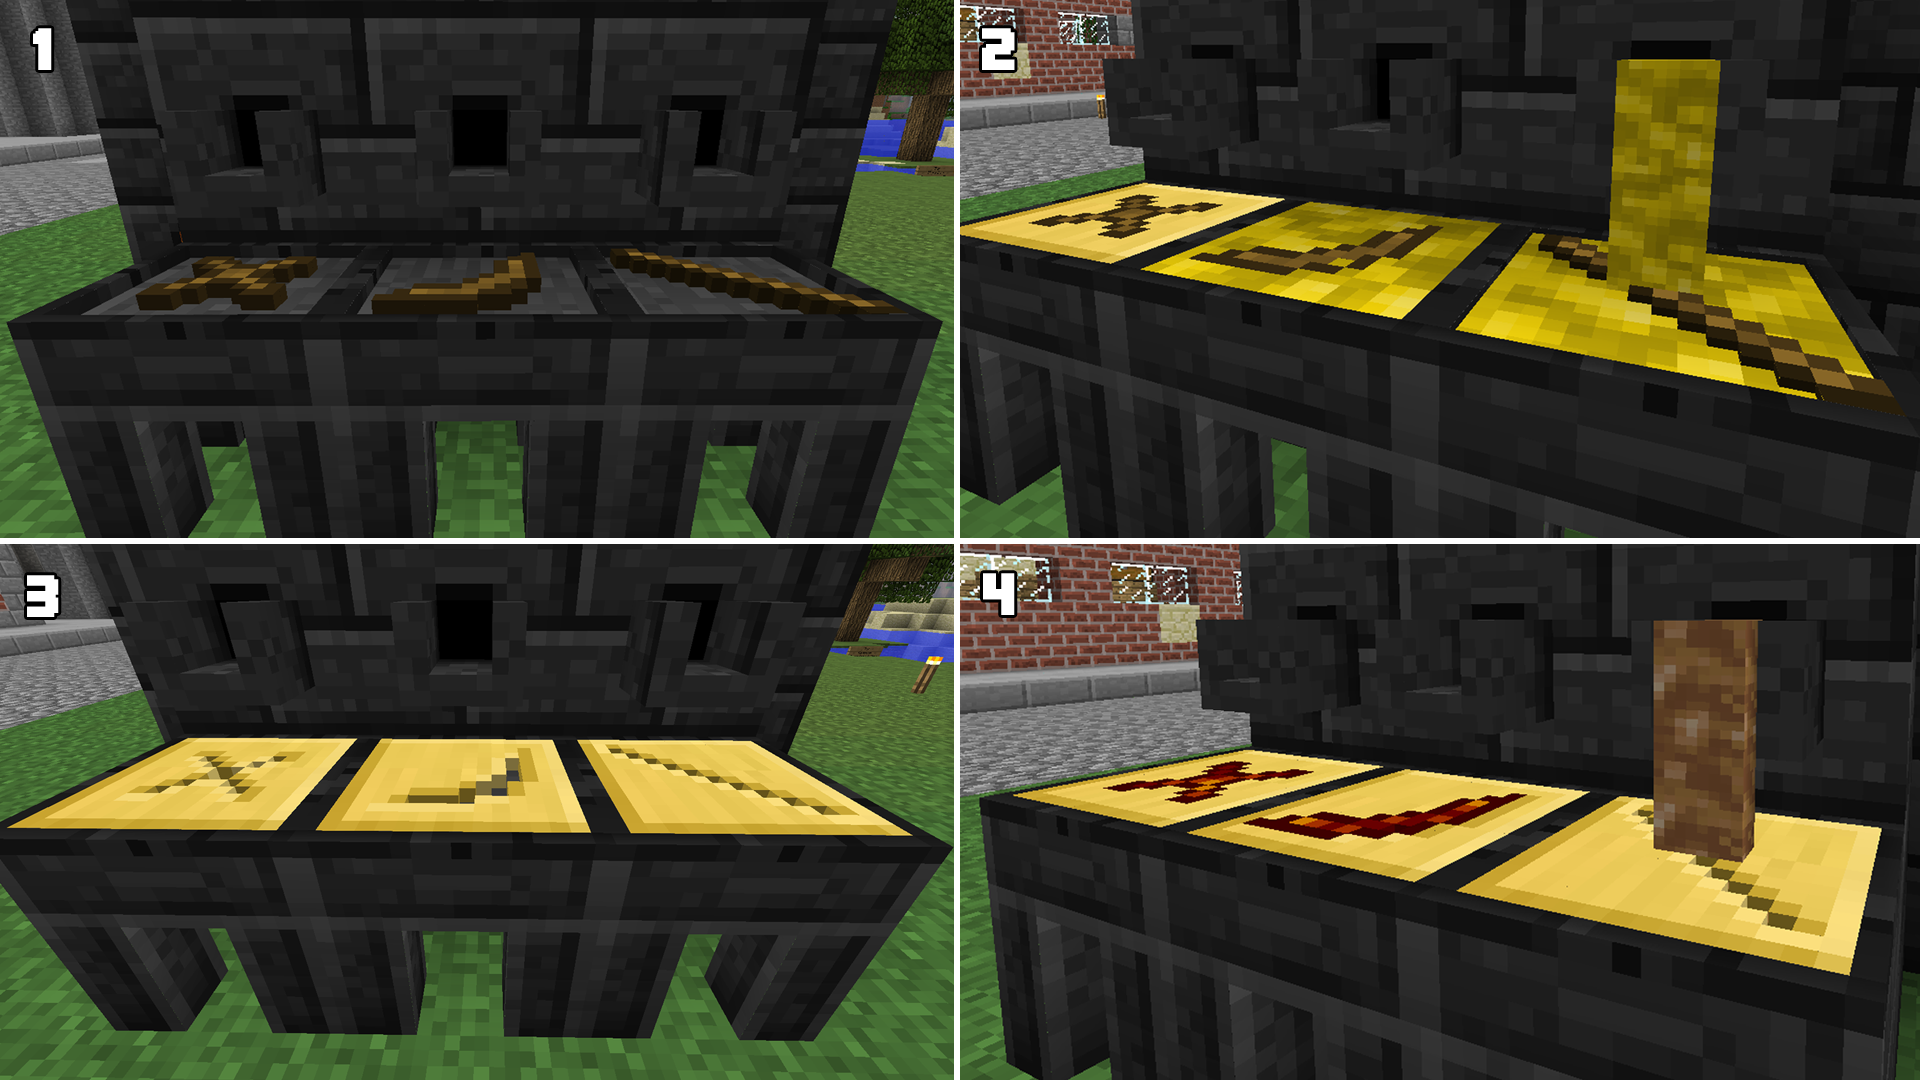 Minecraft tinkers construct how to give tools xp with commands